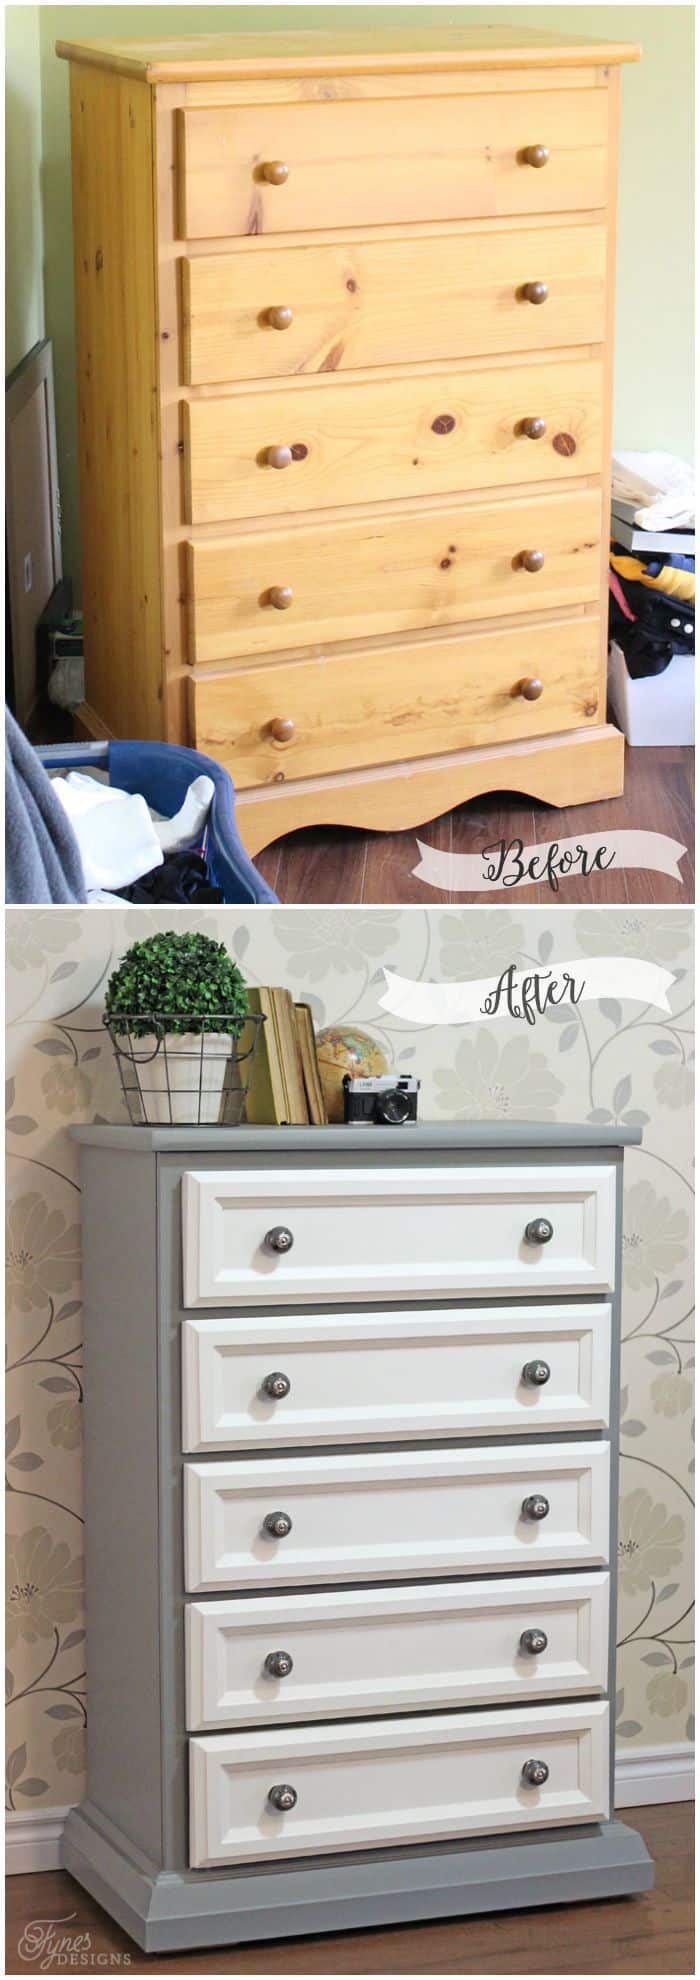 Tall dresser makeover tutorial with trim and paint fynes for Design makeover